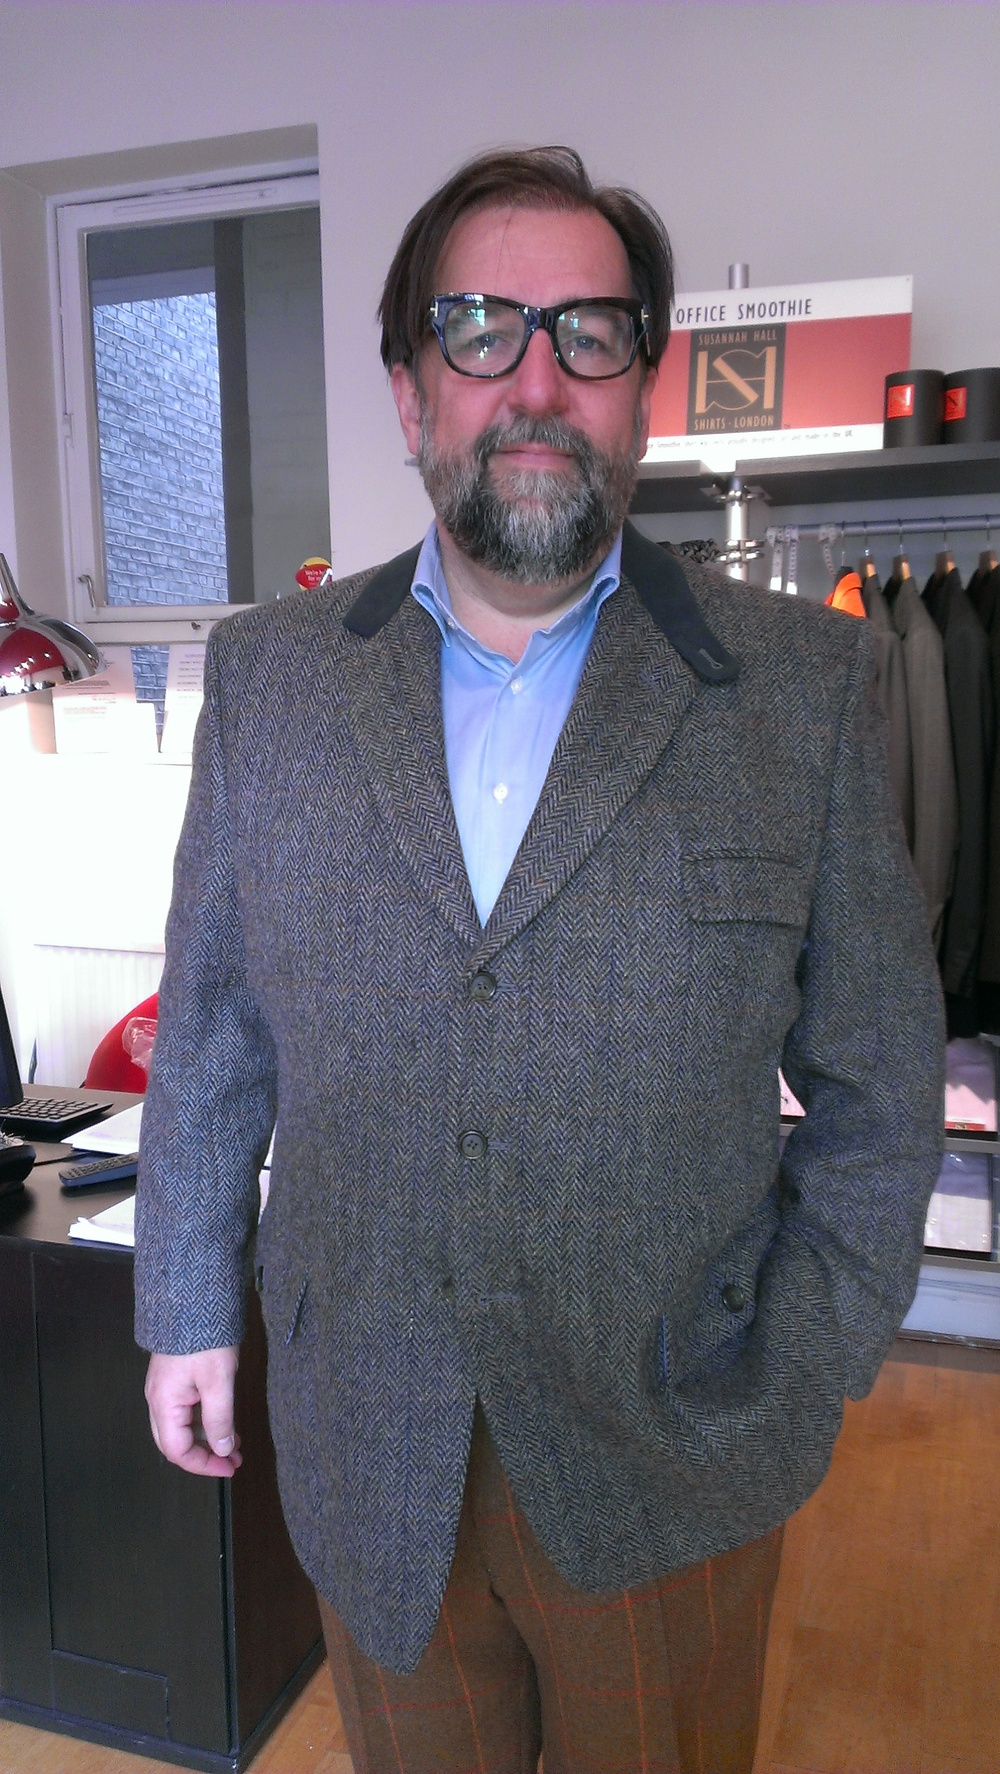 paul-amble-grey-tweed-overcheck-tab-collar-single-breasted-jacket-bespoke-all-uk-made.jpg